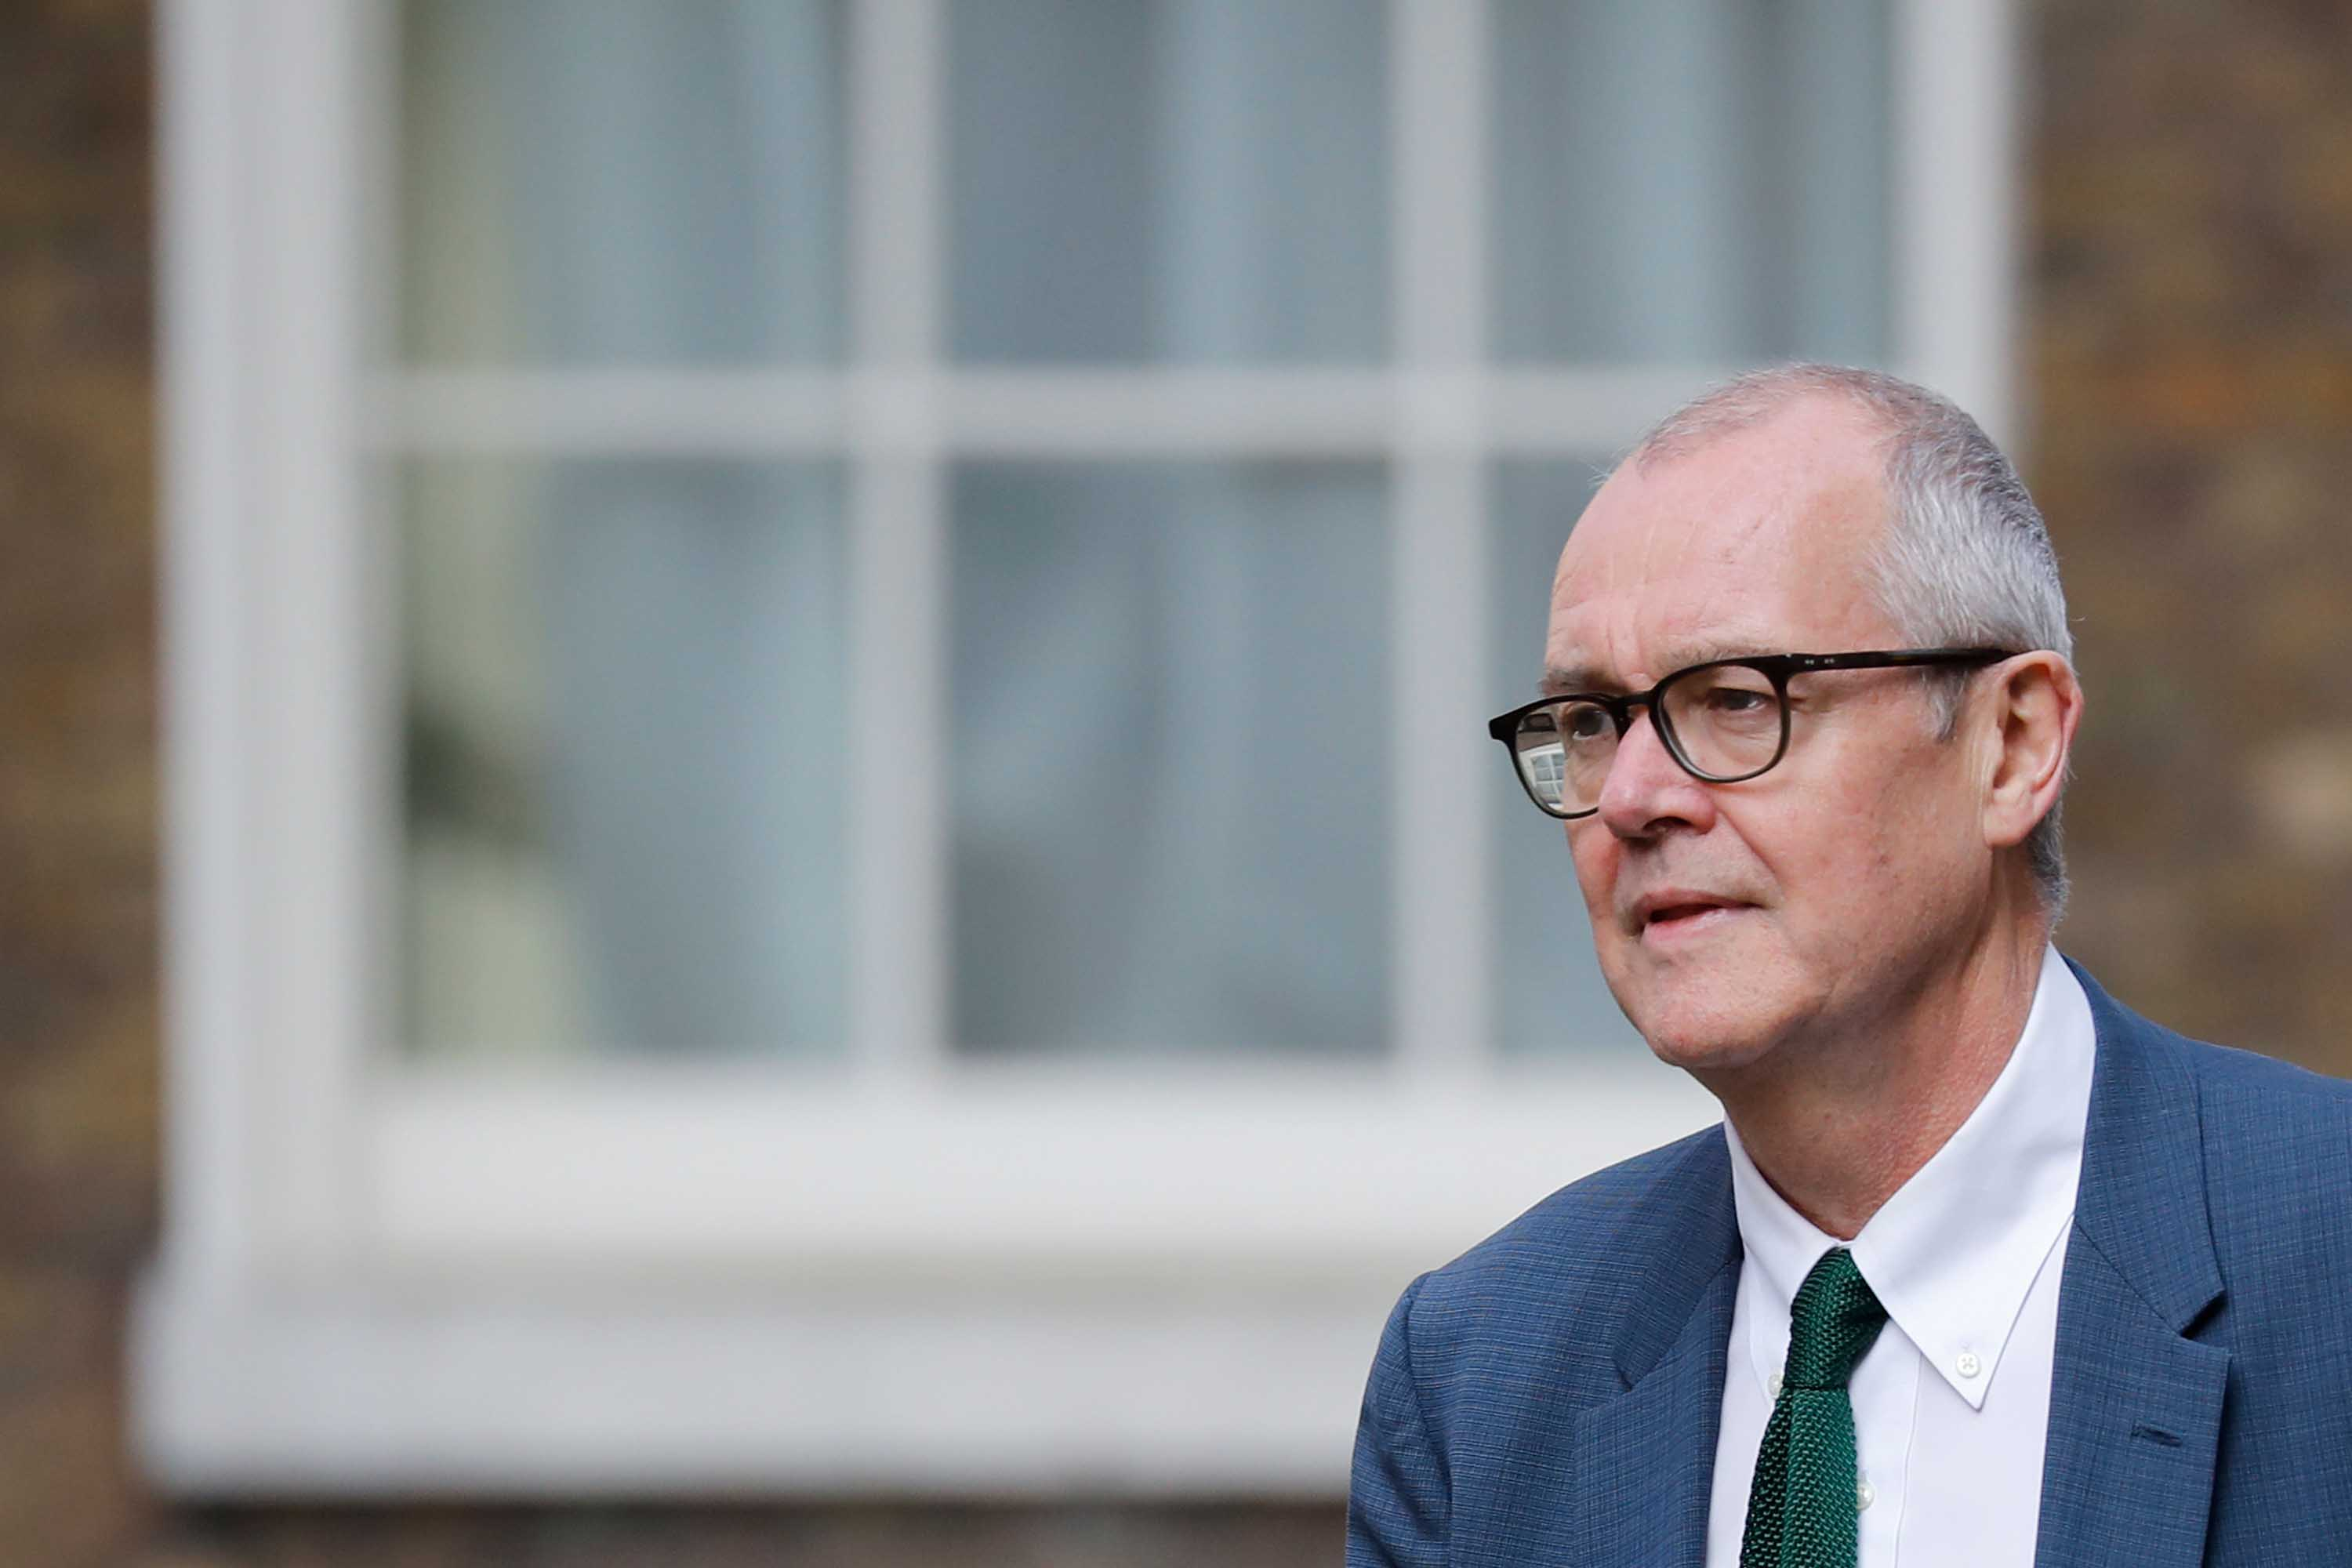 Britain's Chief Scientific Adviser Patrick Vallance arrives at 10 Downing street in London on April 9, to take part in the daily government coronavirus briefing.